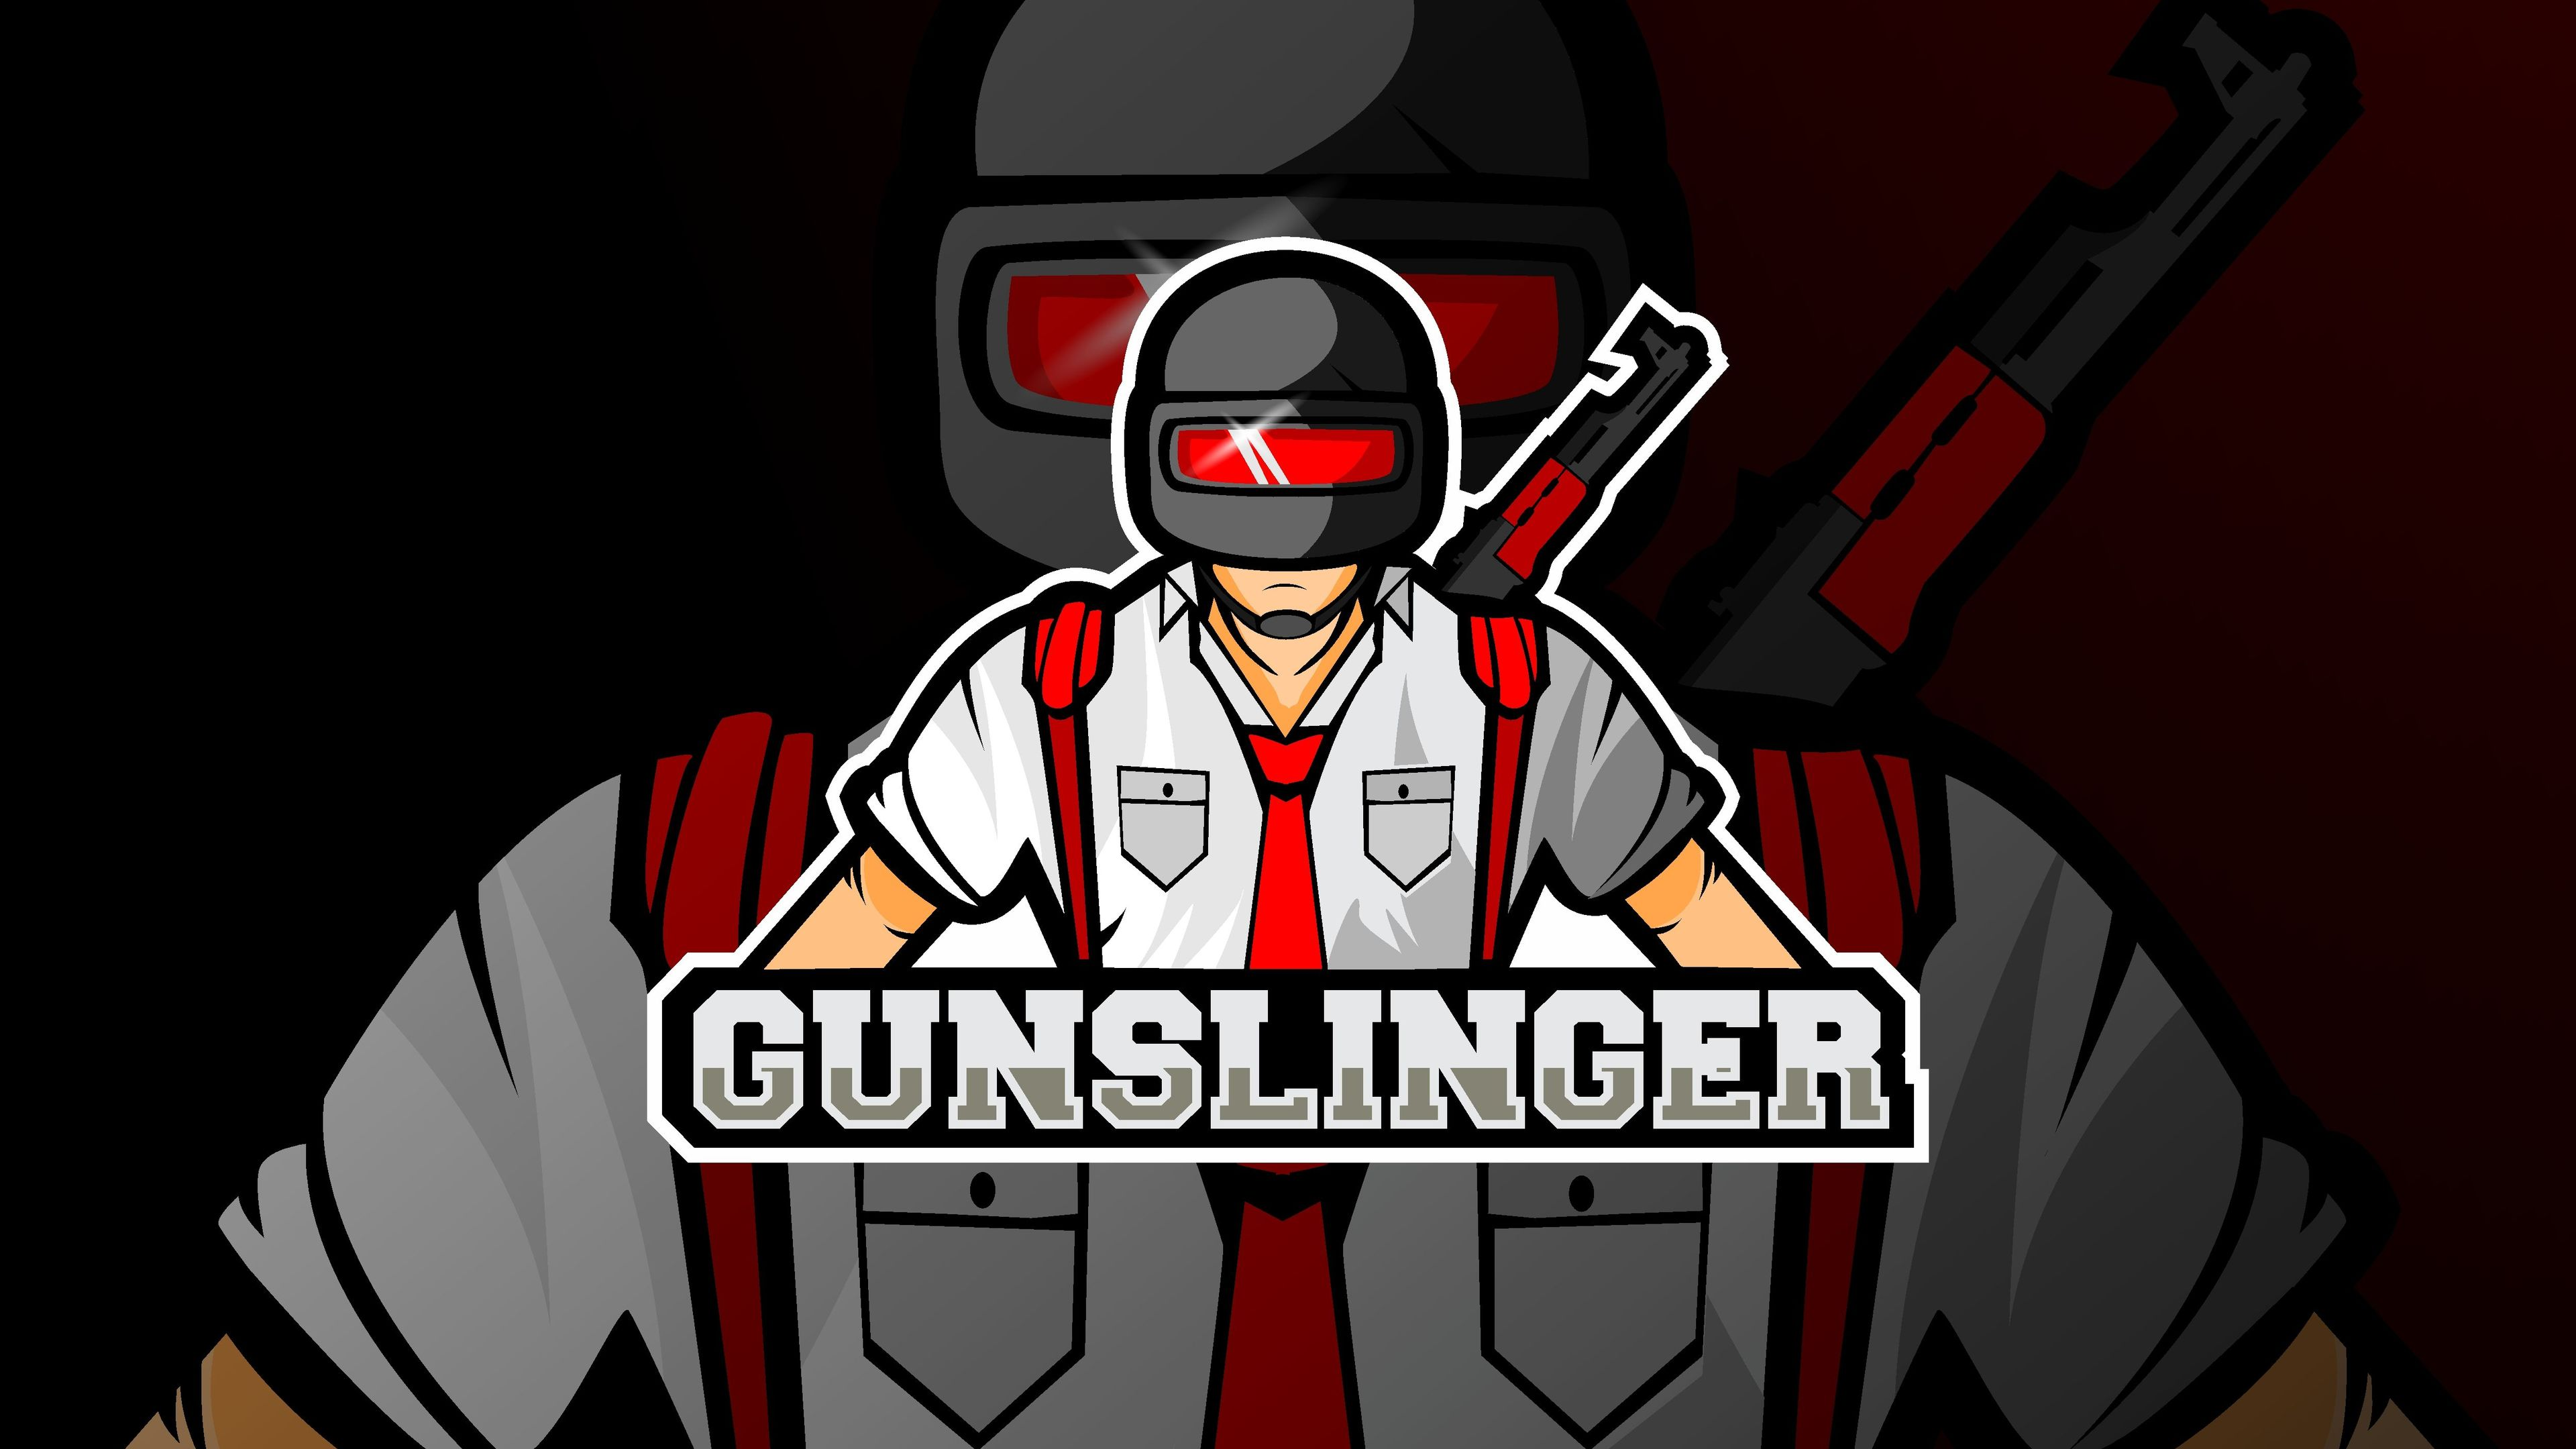 gunslinger pubg 4k 1541294941 - Gunslinger Pubg 4k - pubg wallpapers, playerunknowns battlegrounds wallpapers, helmet wallpapers, hd-wallpapers, games wallpapers, 4k-wallpapers, 2018 games wallpapers